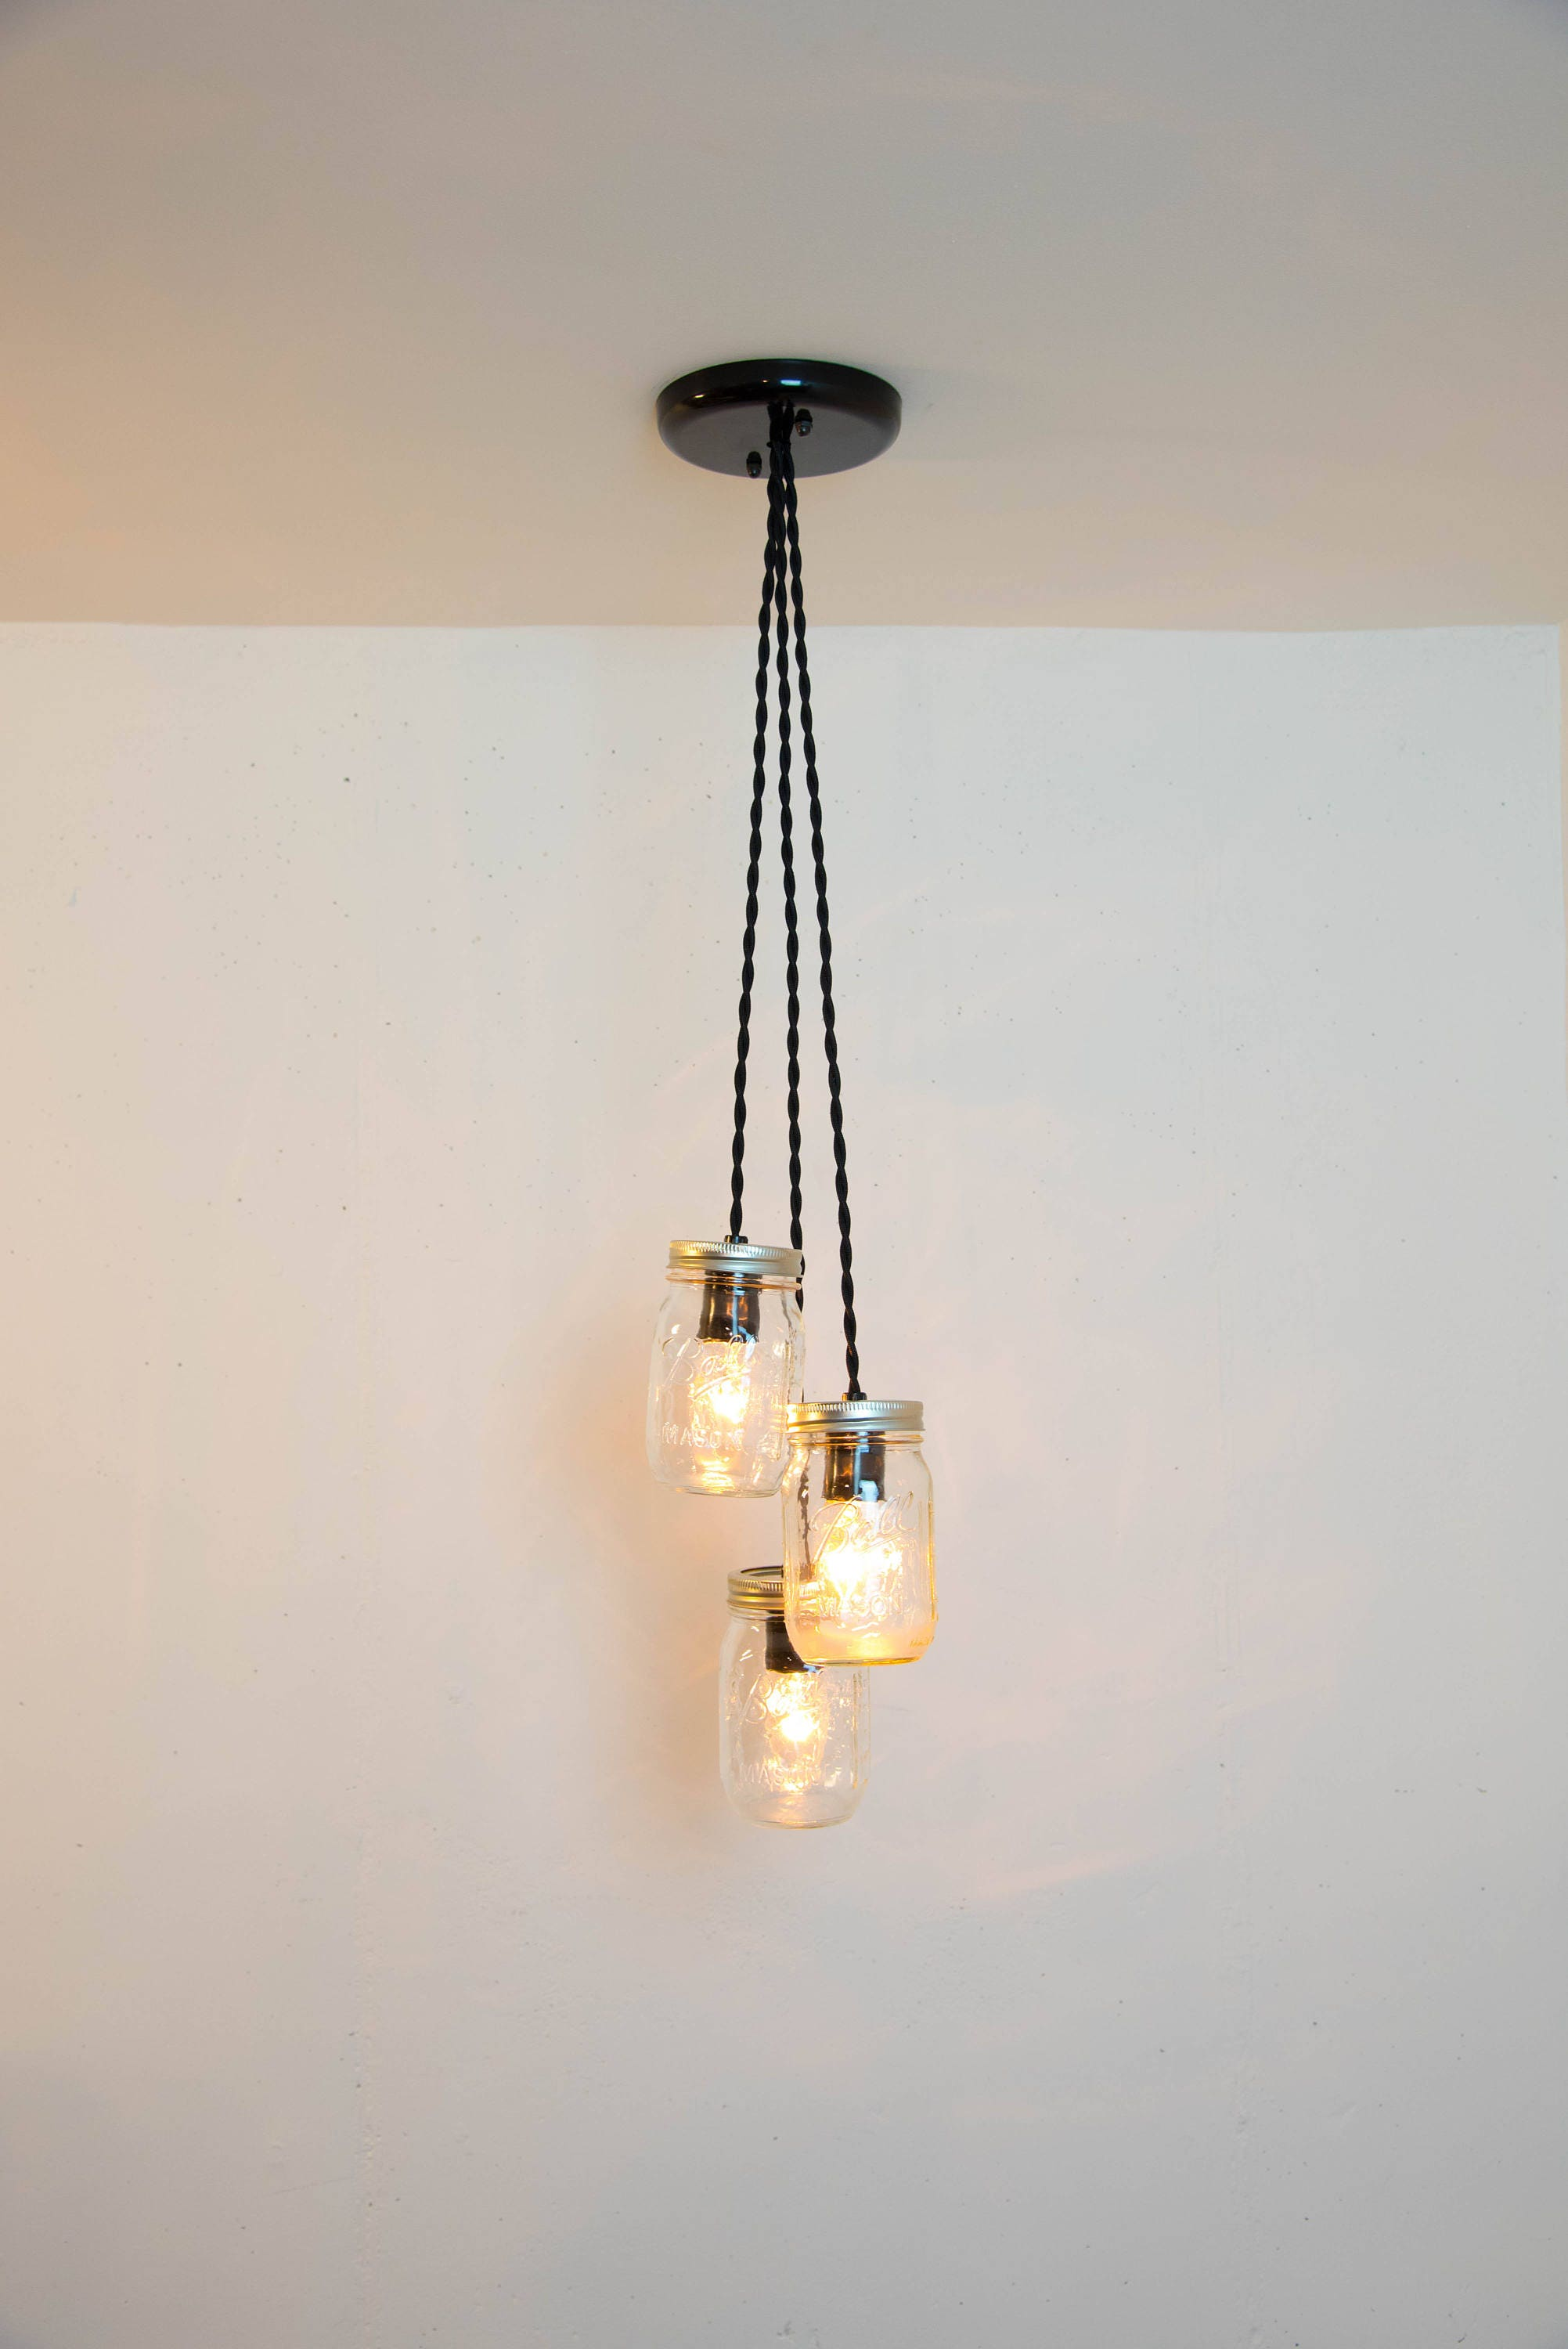 Mason jar chandelier mason jar pendant light mason jar lamp mason jar chandelier mason jar pendant light mason jar lamp ball jar light fixture plug in mason jar light mason jar decor arubaitofo Gallery